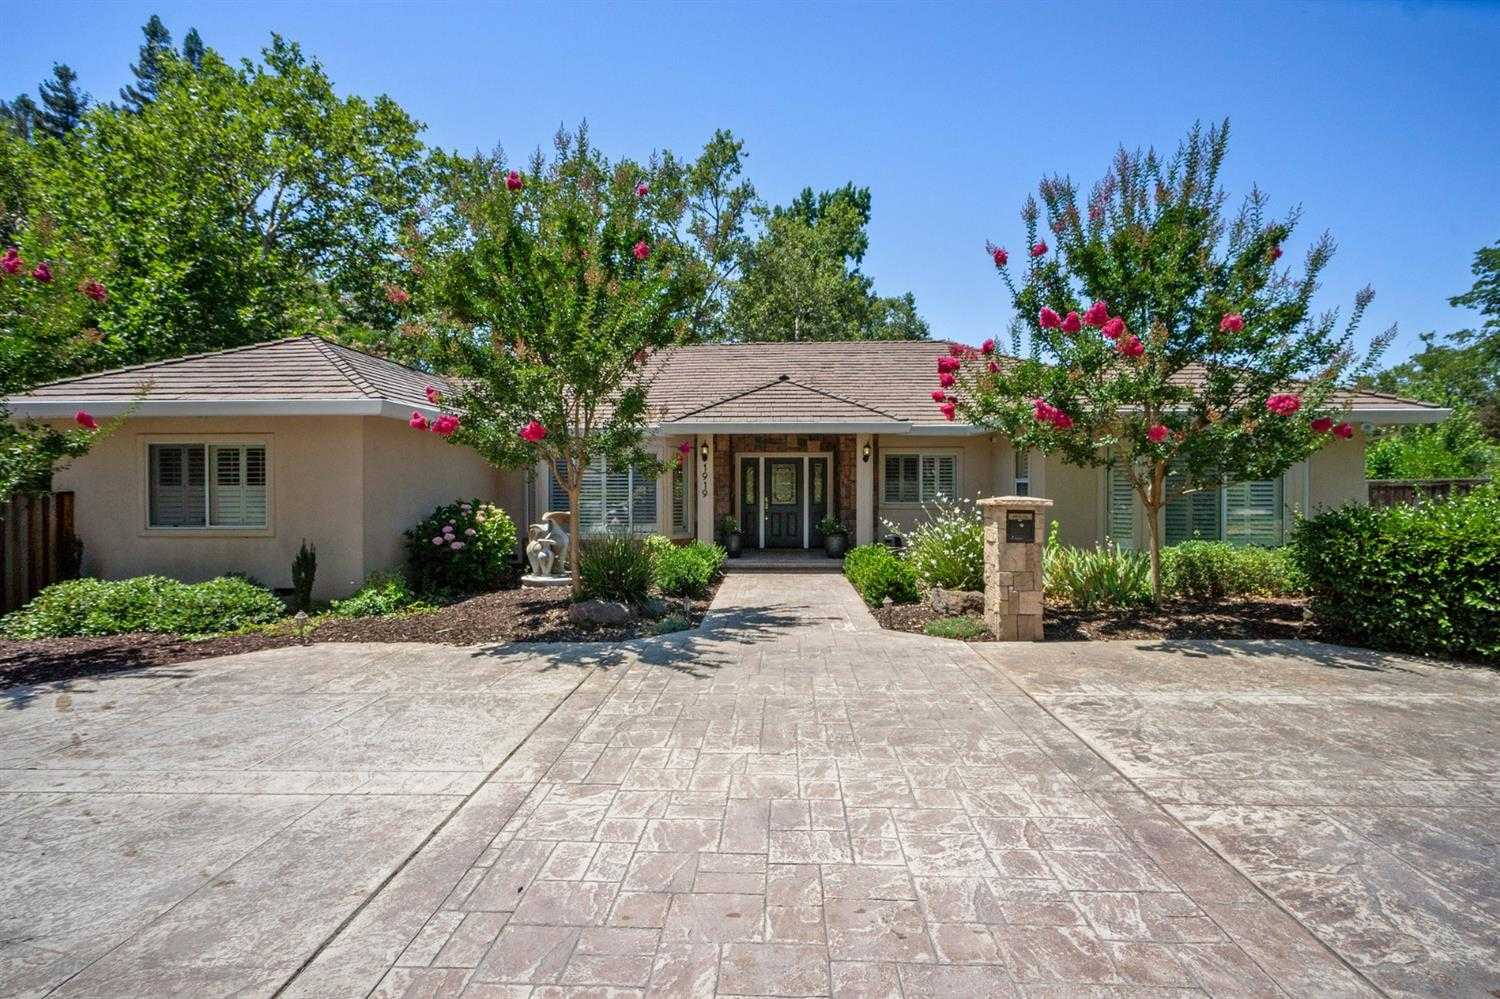 $1,300,000 - 5Br/3Ba -  for Sale in Arden Oaks, Sacramento